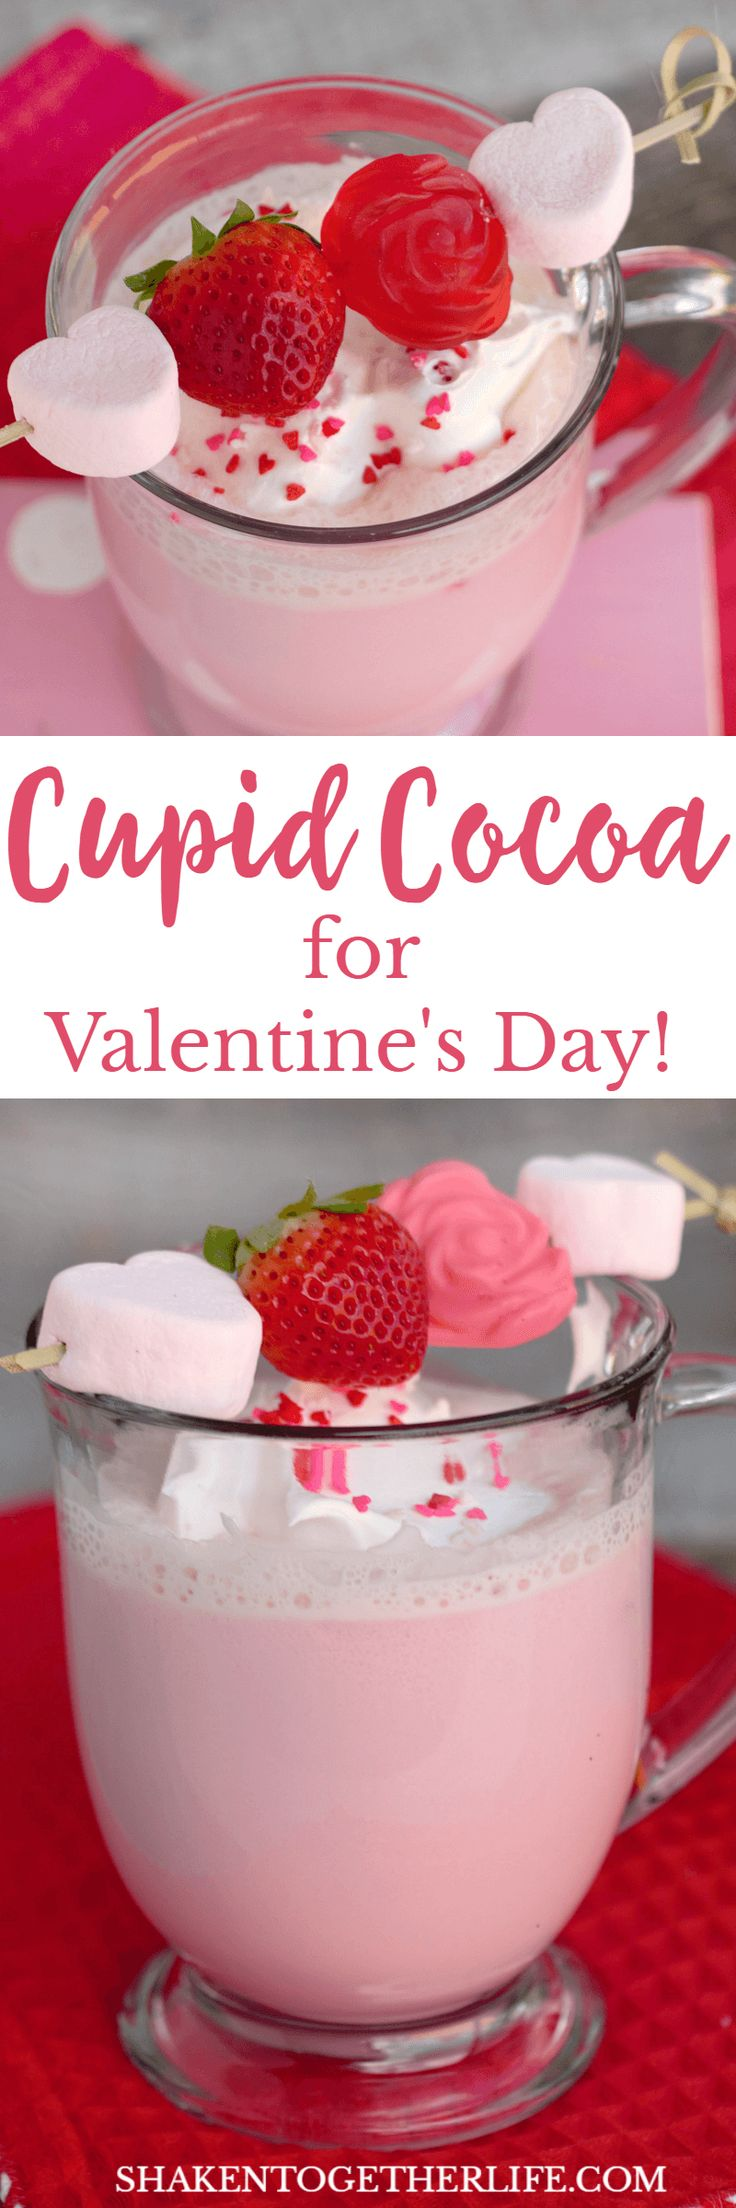 This pretty in pink Cupid Cocoa is perfect for Valentine's Day! Warm mugs of strawberry milk are topped with whipped cream, sprinkles and an adorable mini treat kabob!